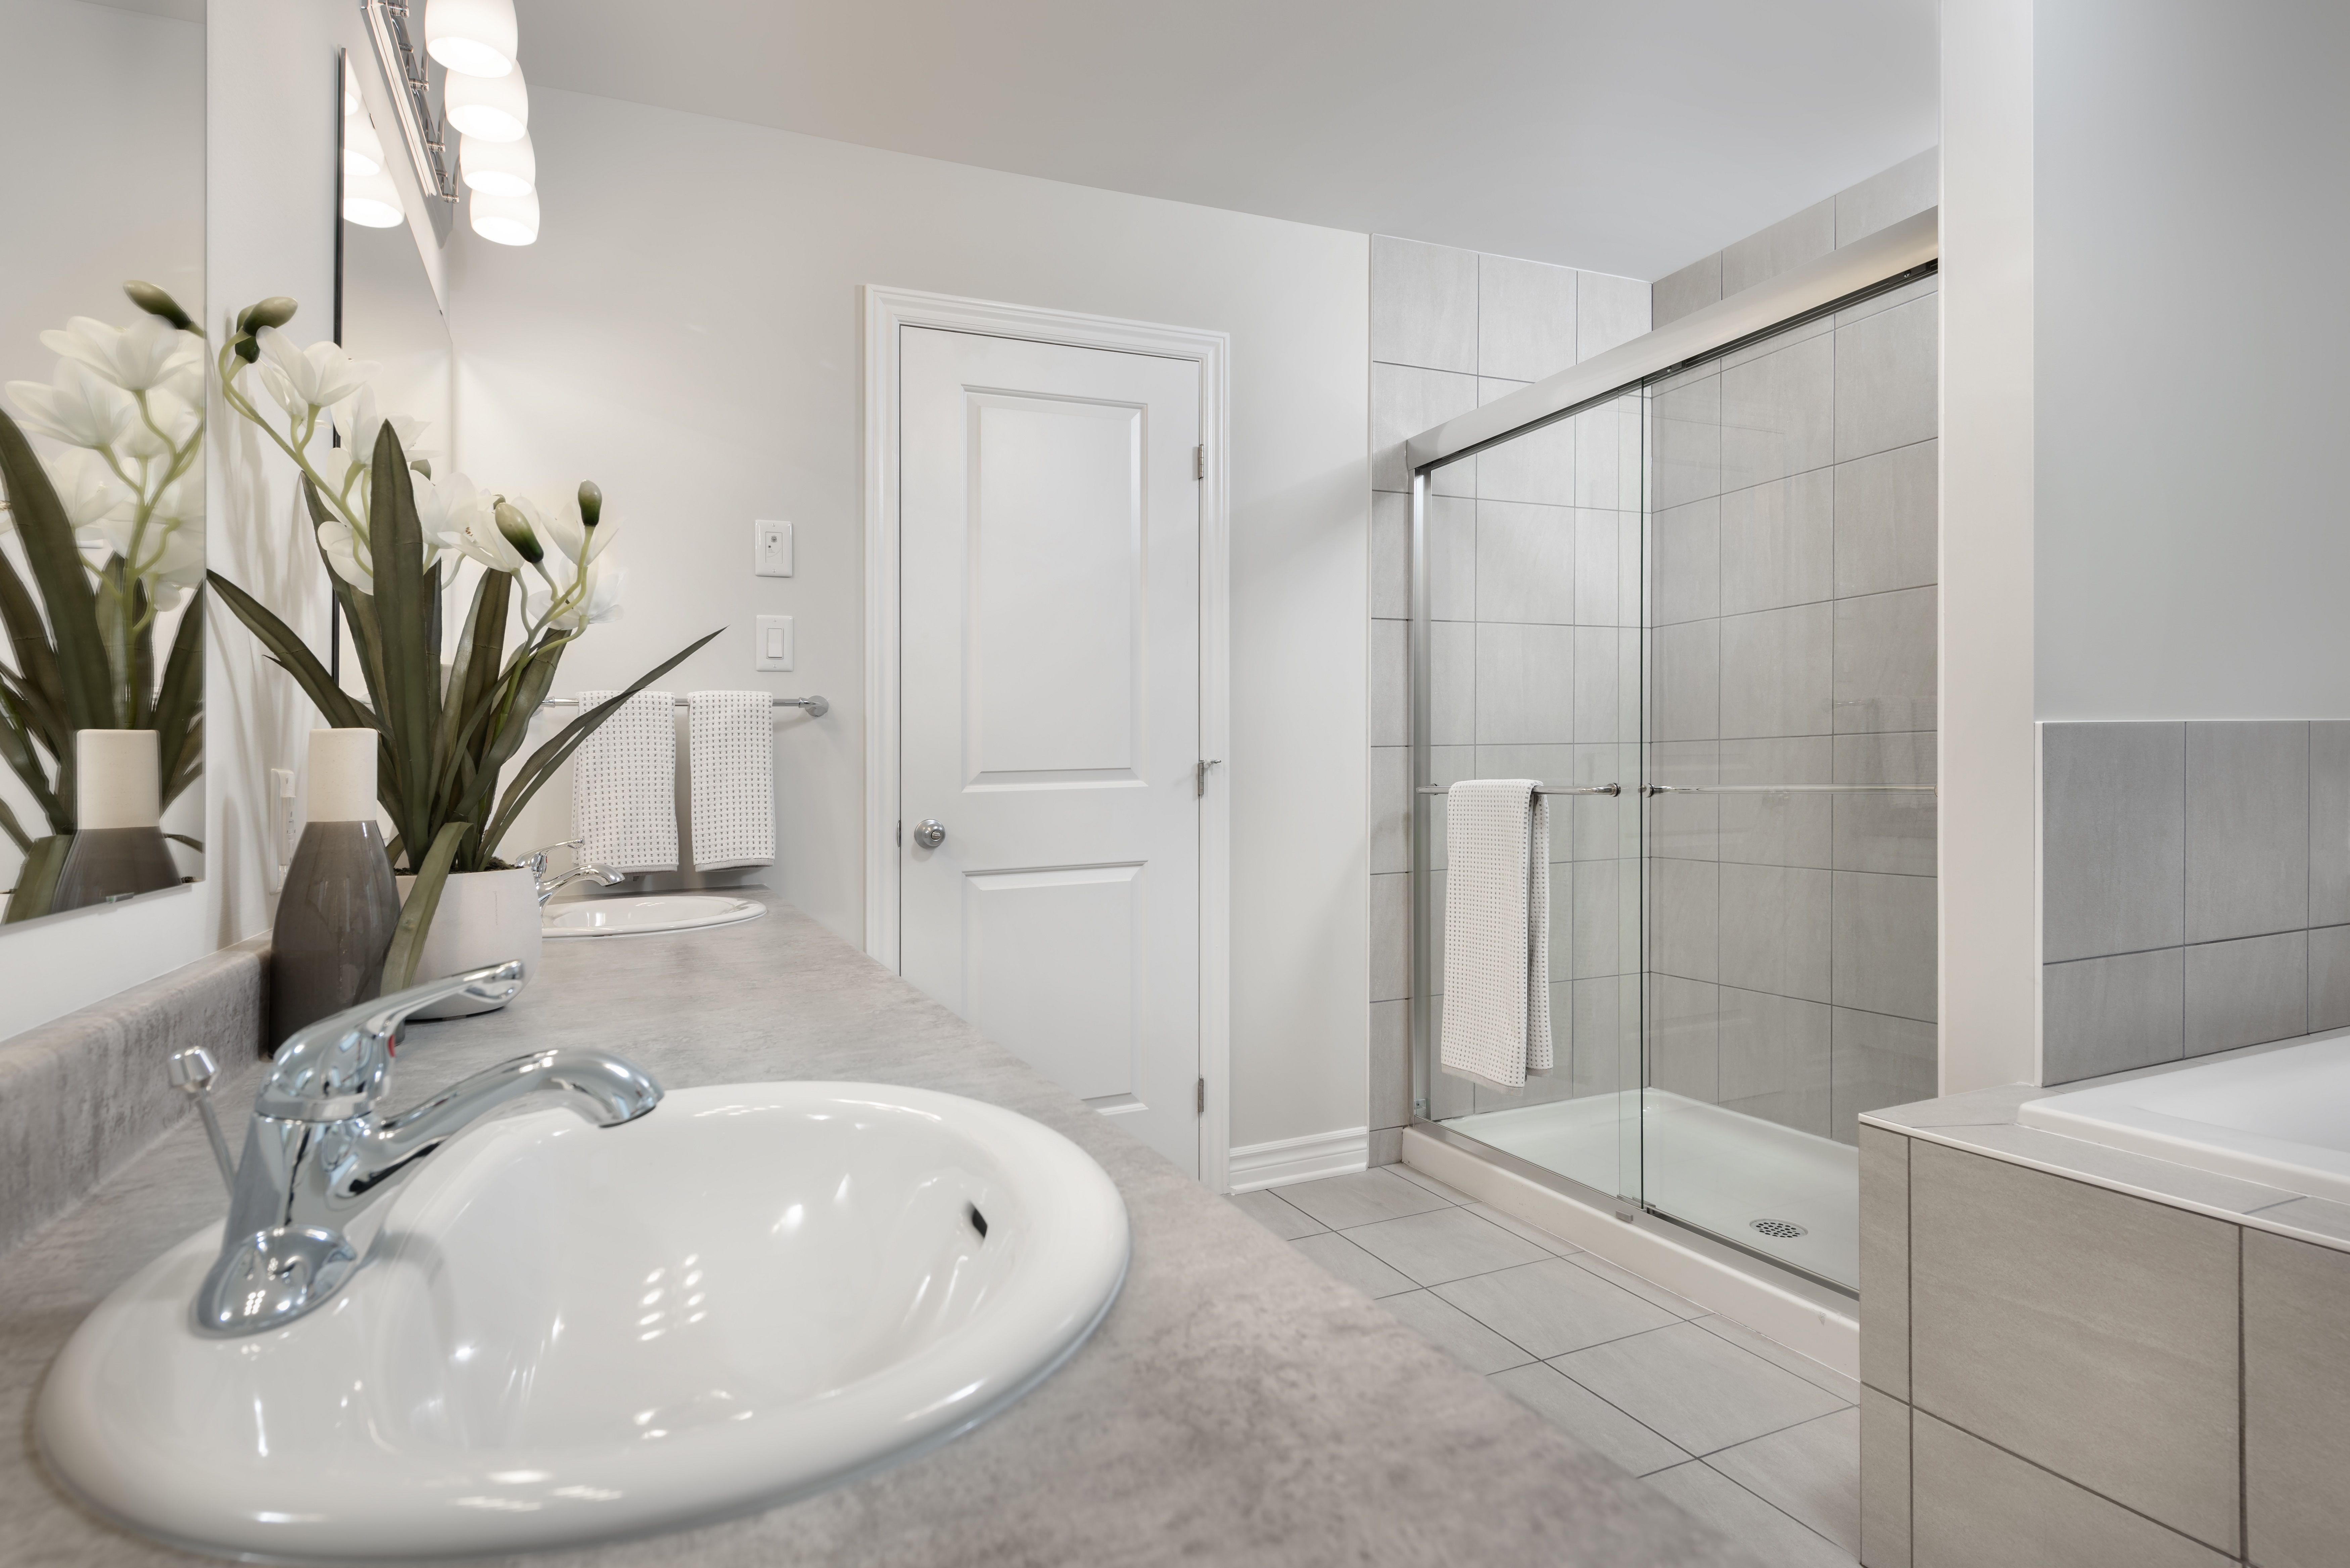 This Is The Ensuite Bathroom In The Summerhill Model Home In